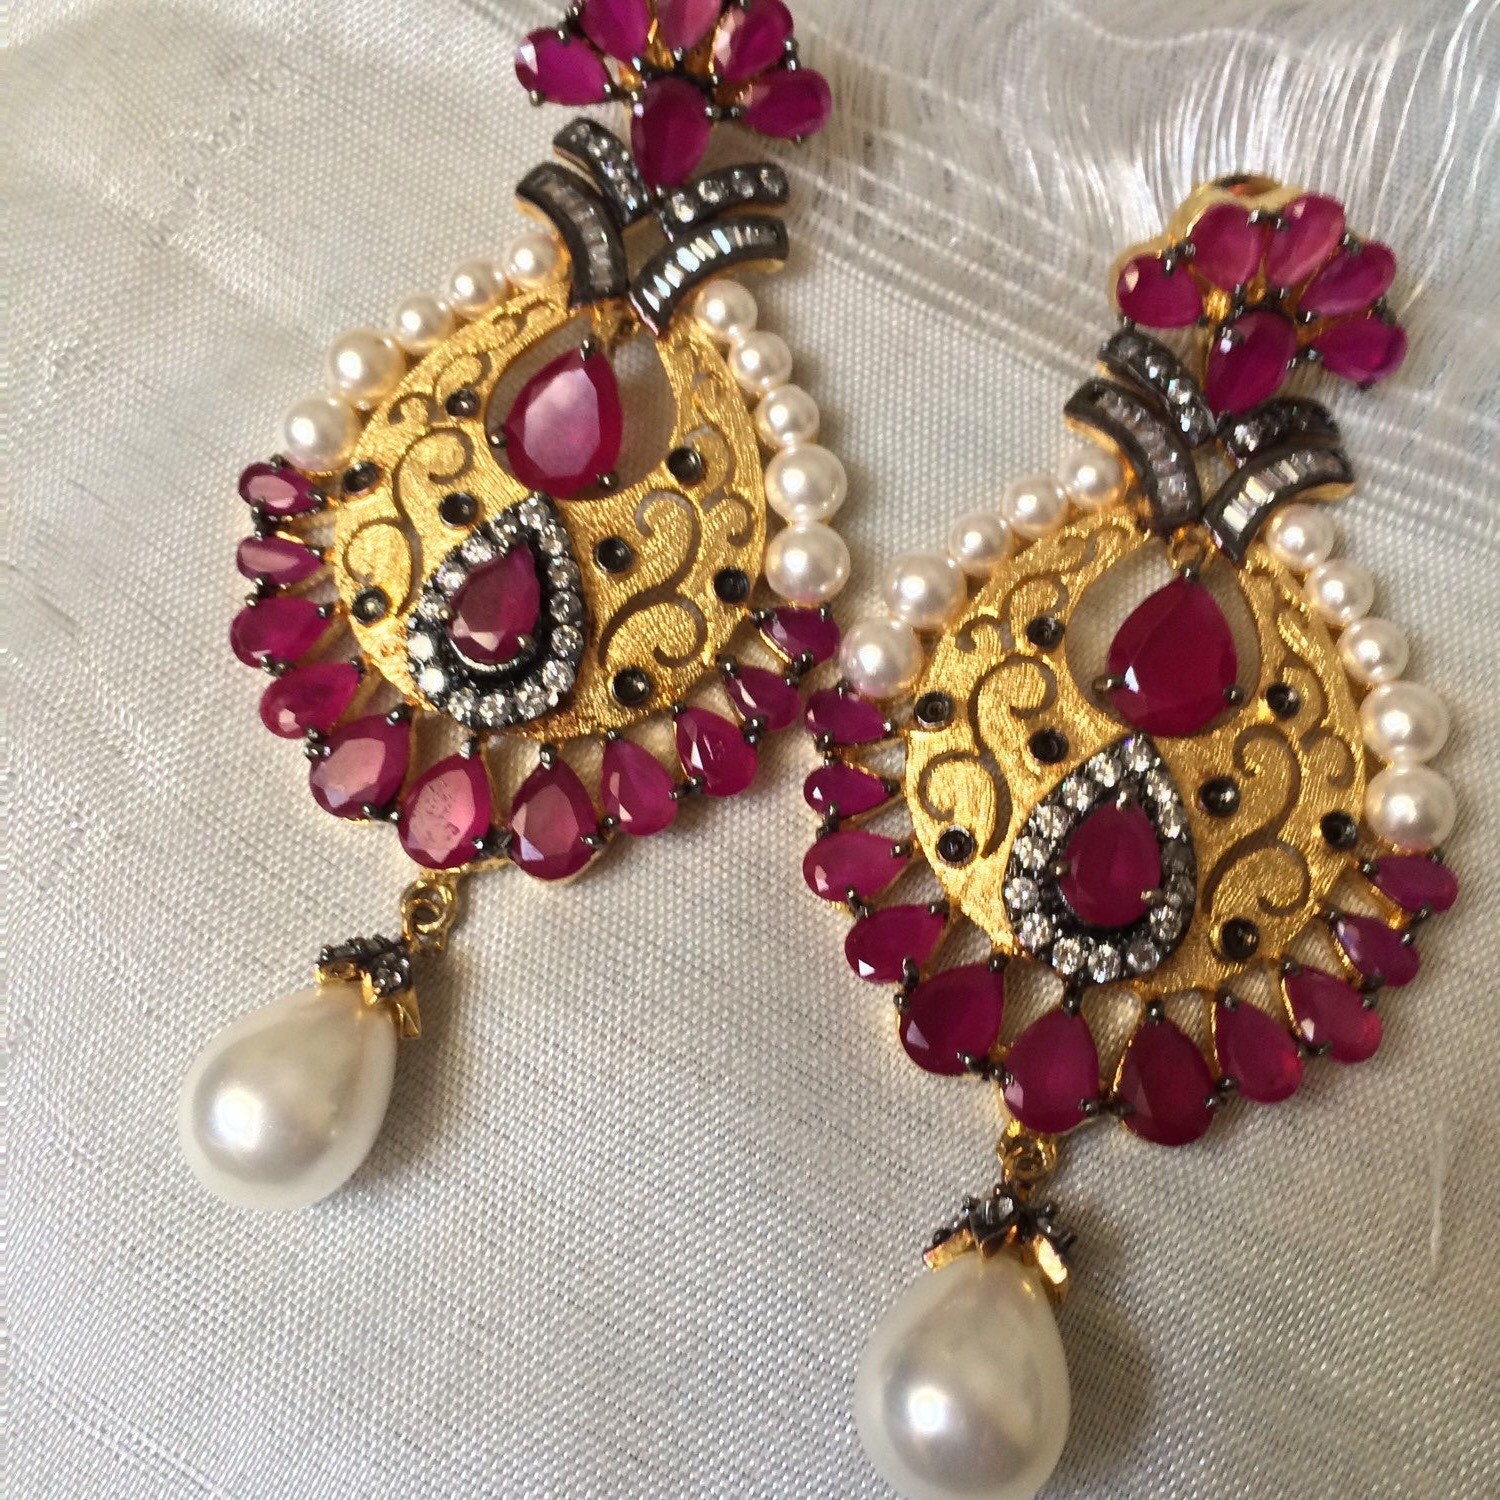 ruby earrings hyderabadi indian wedding jewelry statement. Black Bedroom Furniture Sets. Home Design Ideas